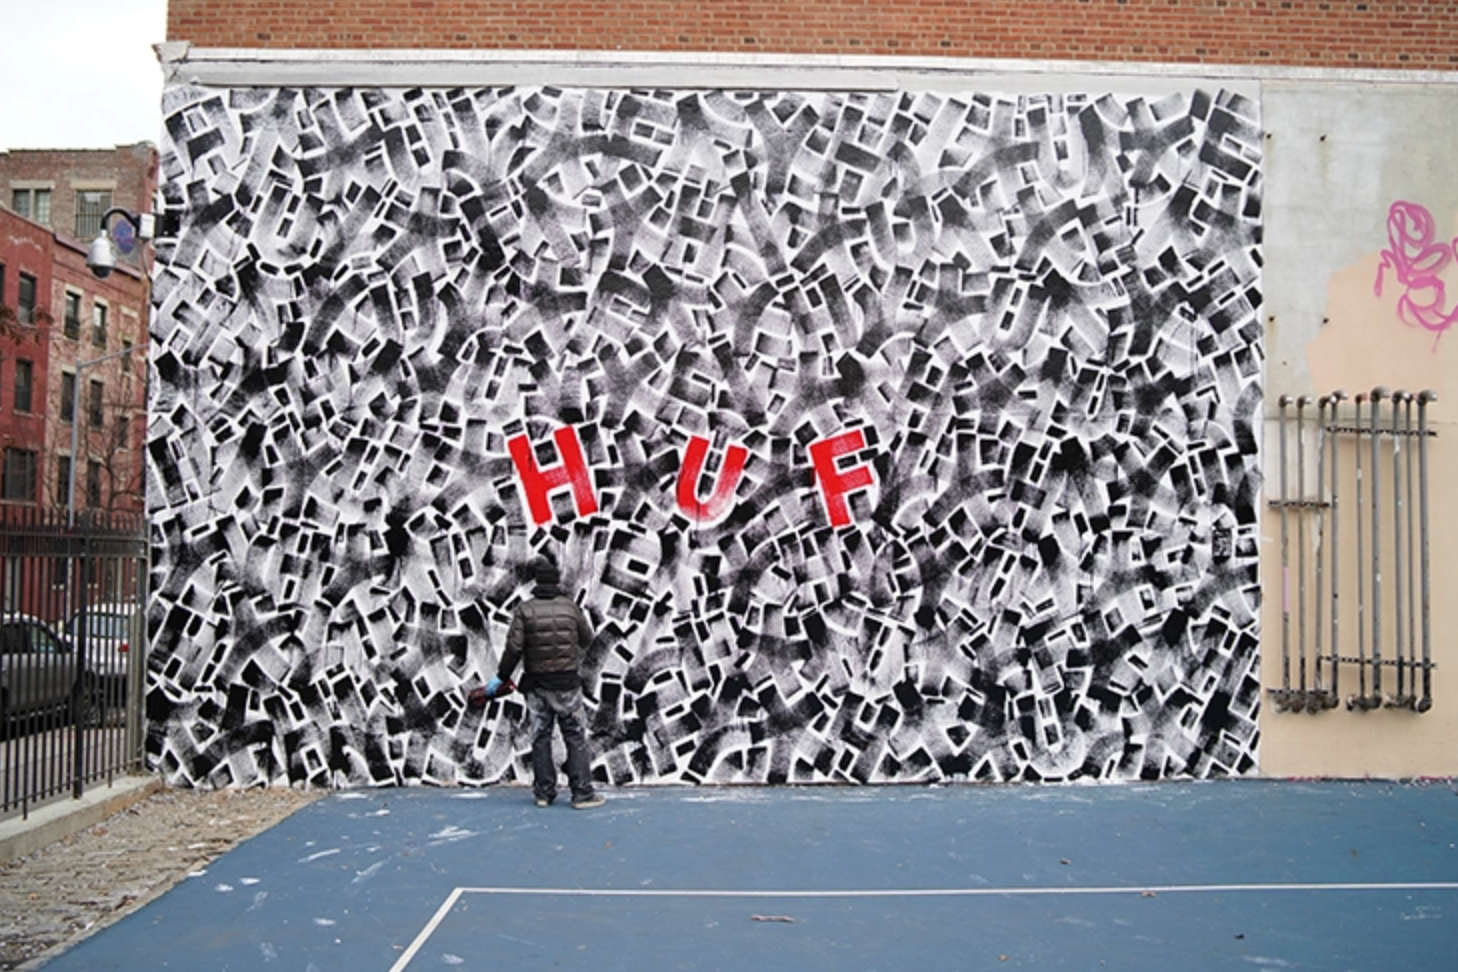 Image courtesy of  HUF Official website.